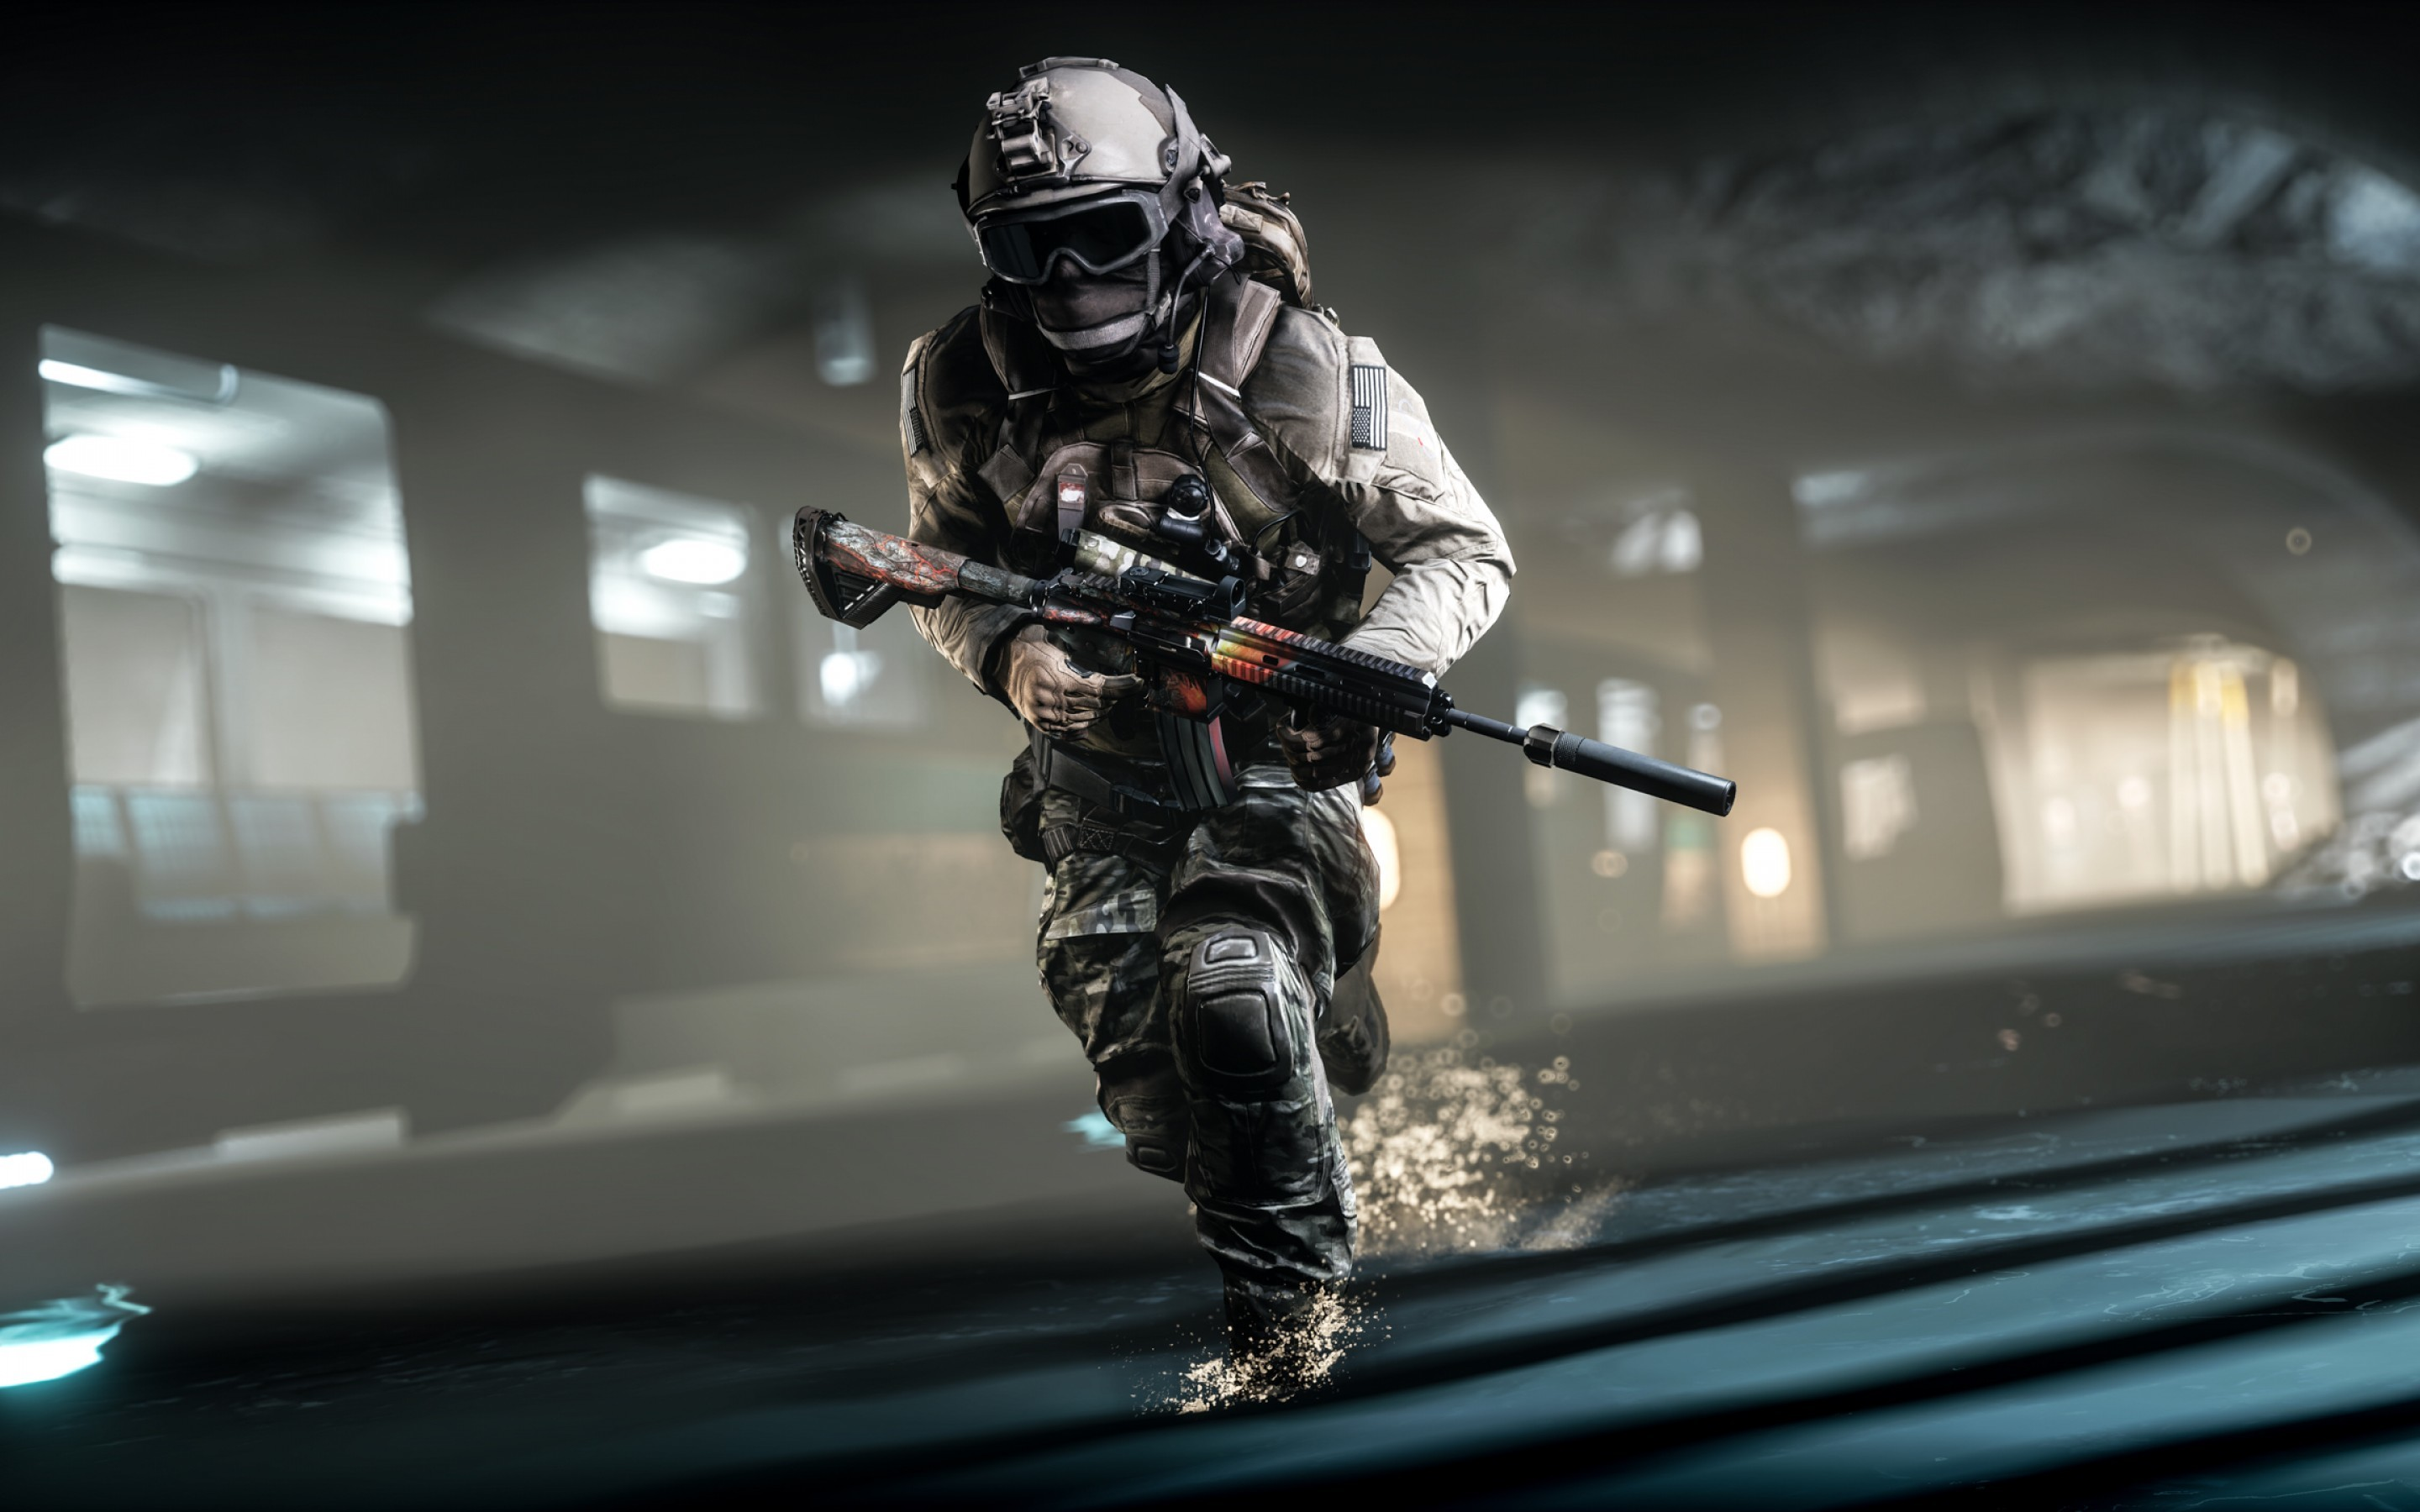 Res: 2880x1800, Games / Soldier Wallpaper